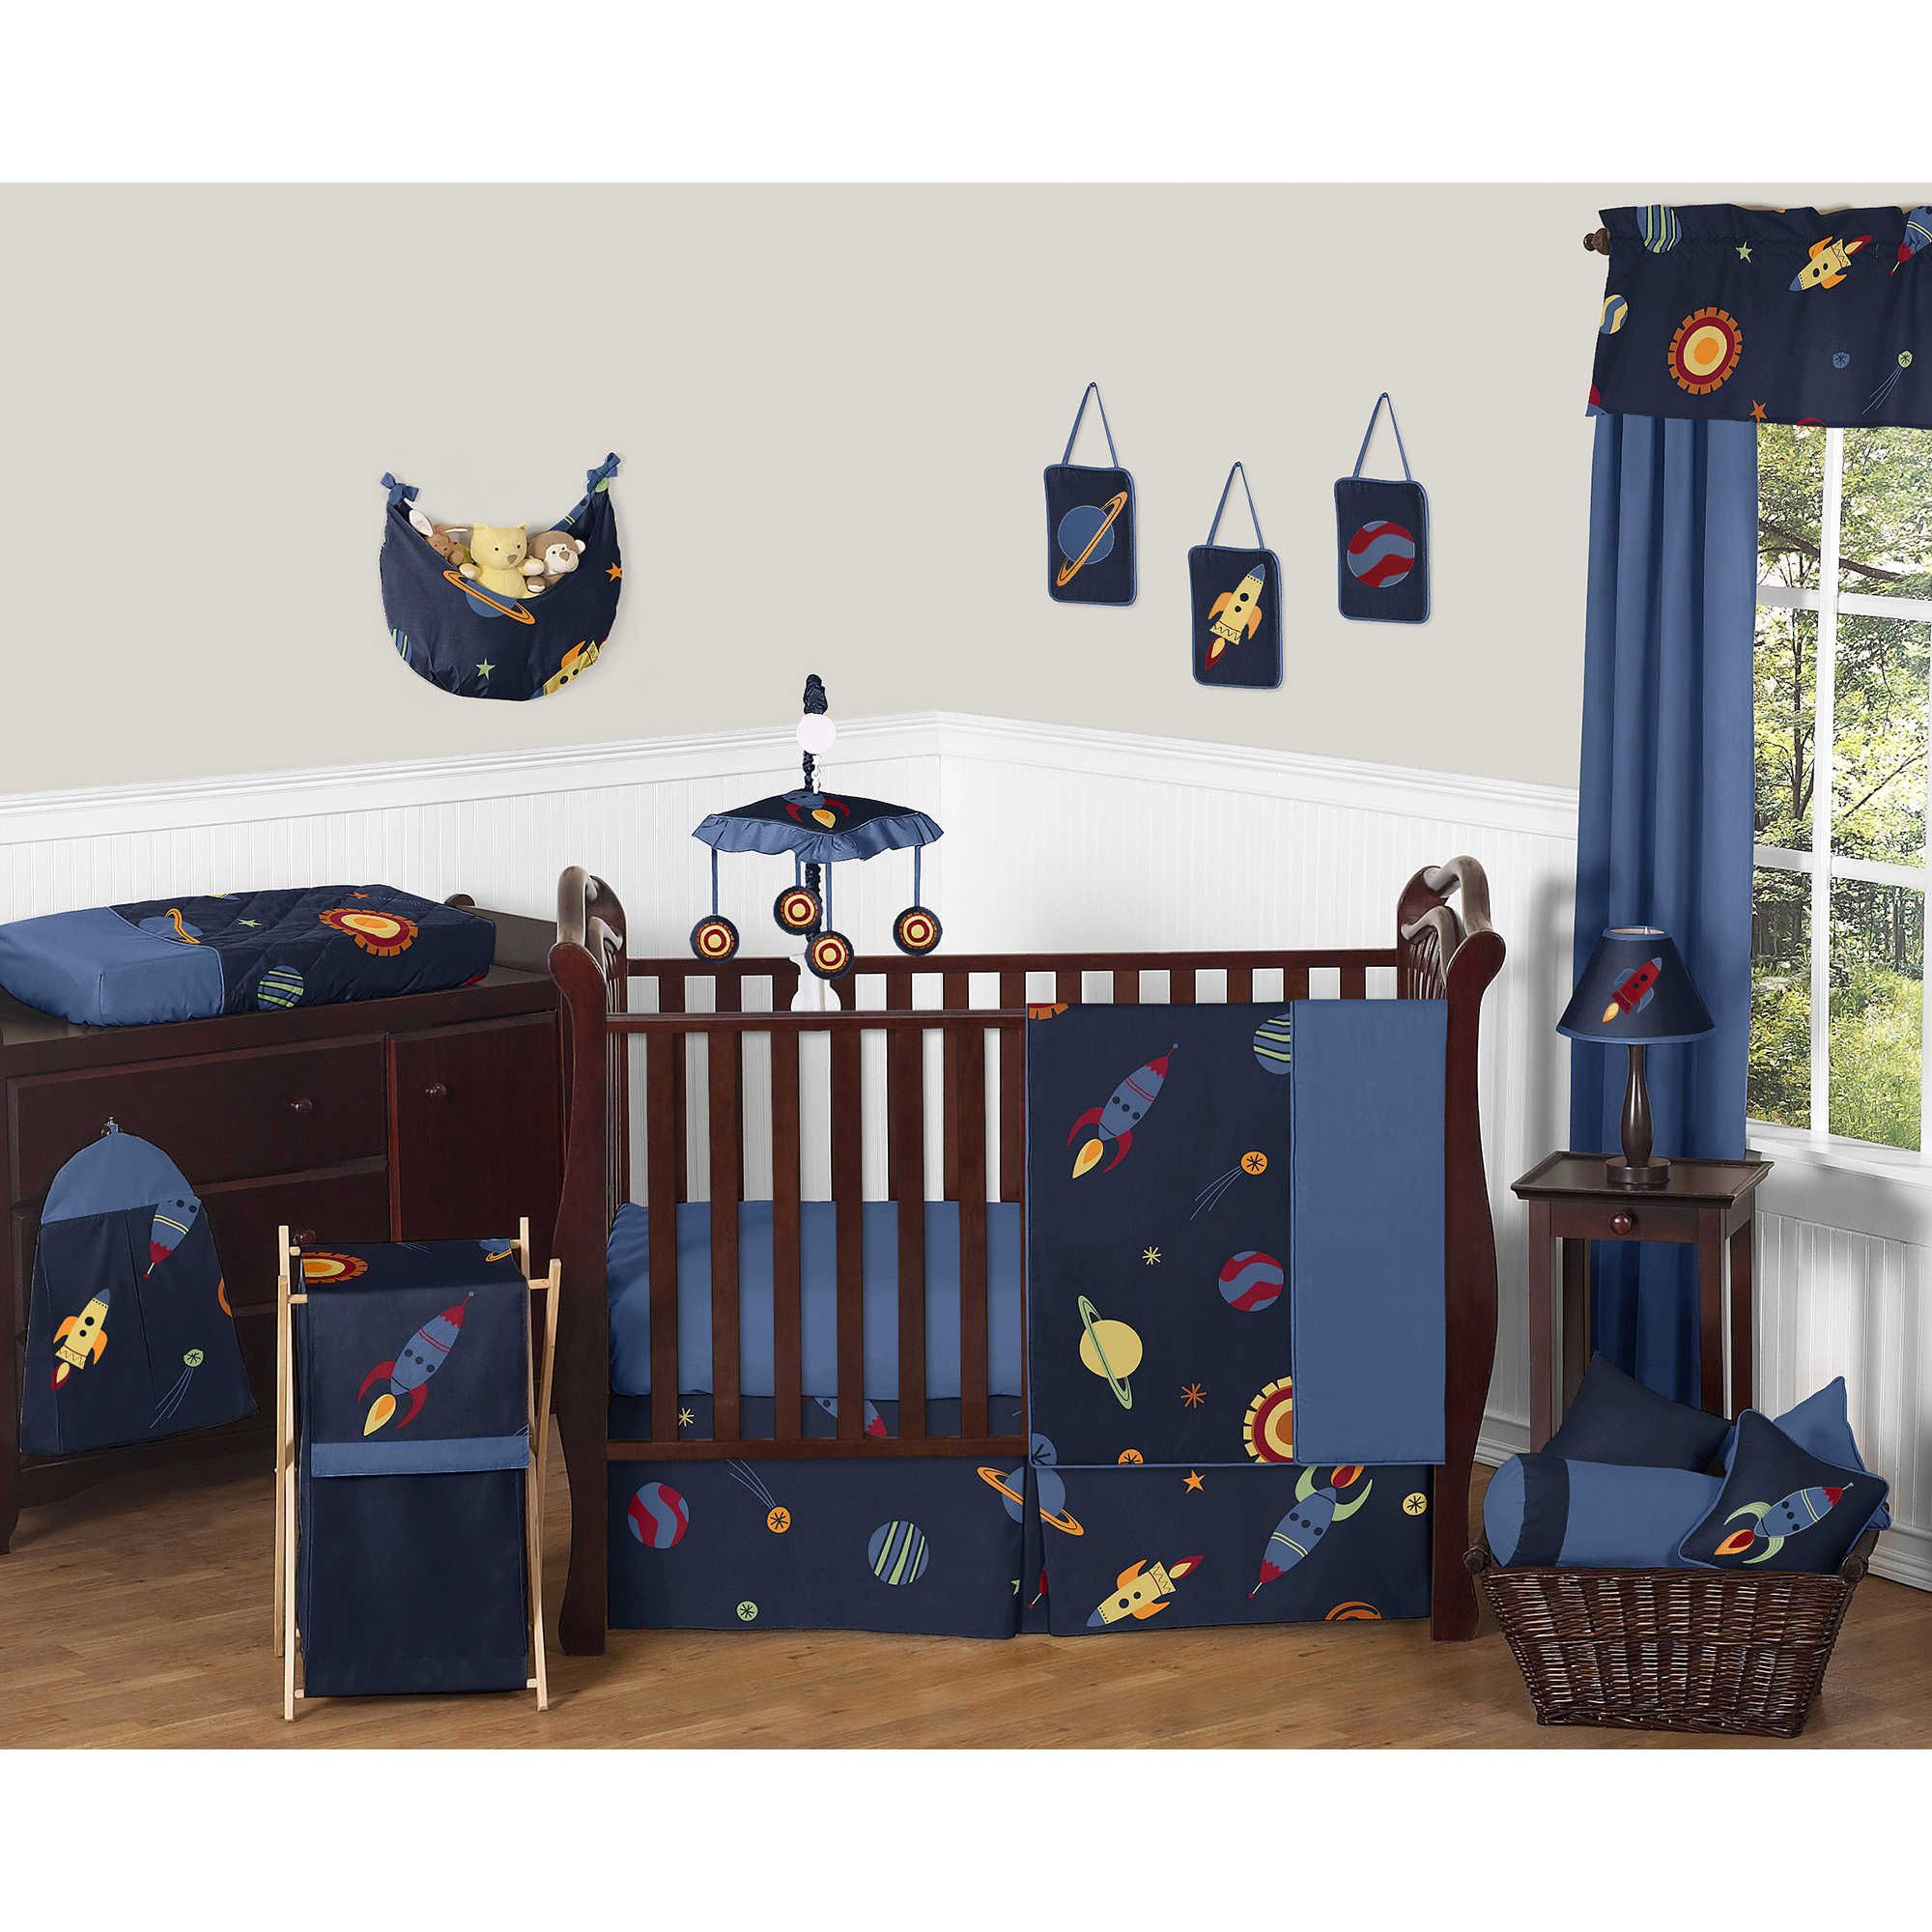 designs sweet grey bedding jojo coral of dillards endearing crib her with quilts new to cribs